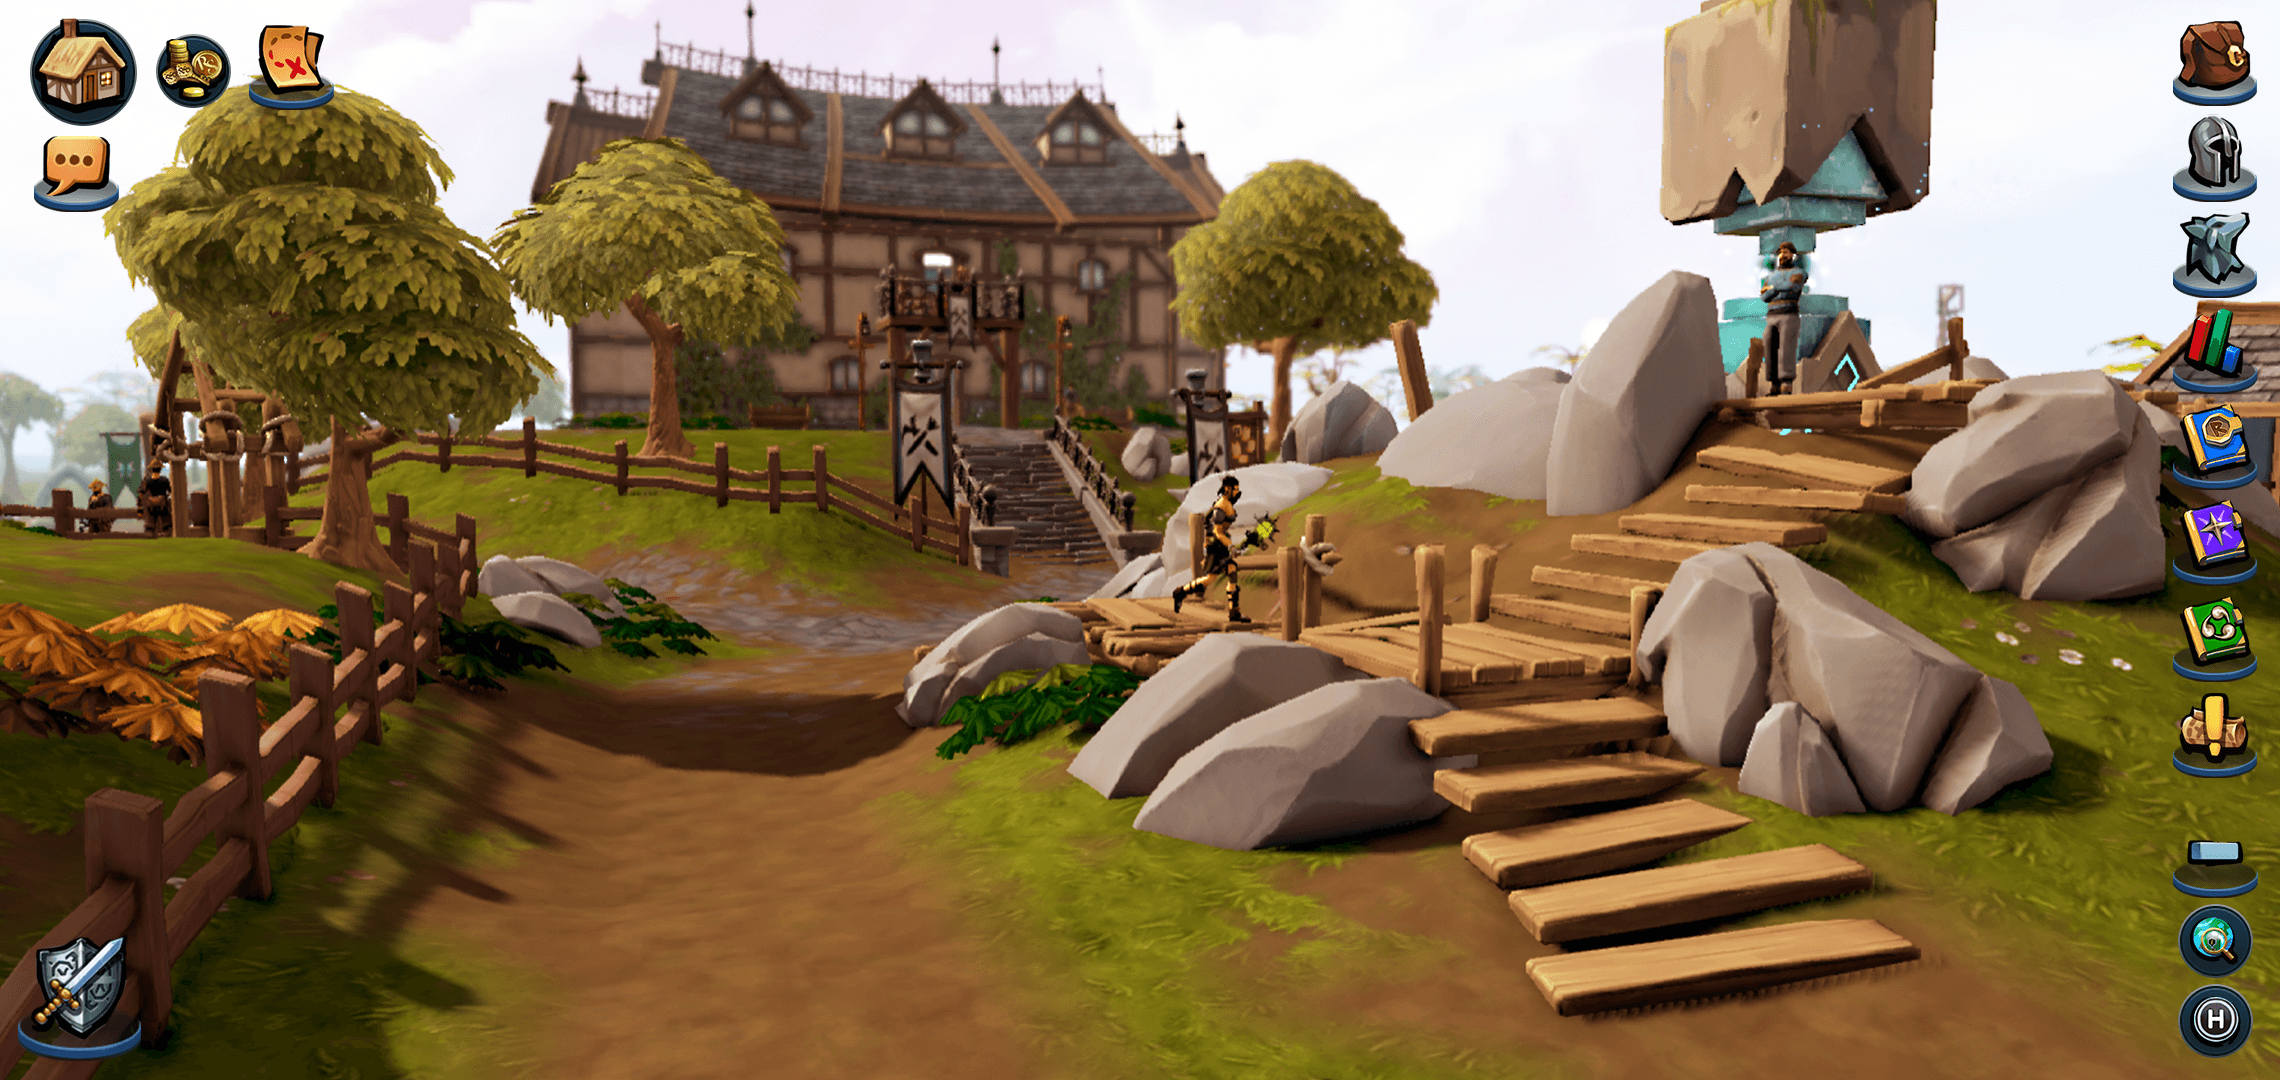 RuneScape Comes To Mobile Devices In Much Anticipated Release